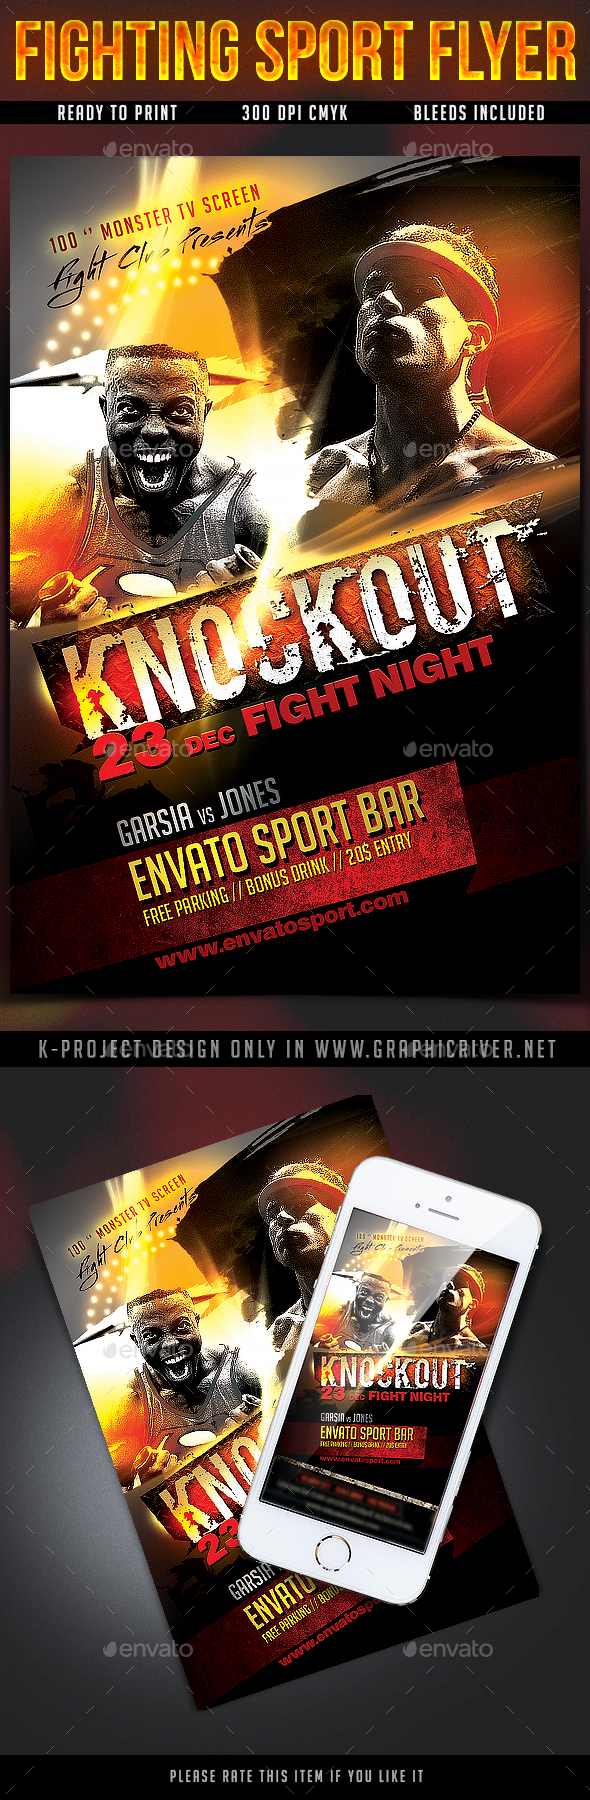 Fighting Sport Flyer - Sports Events